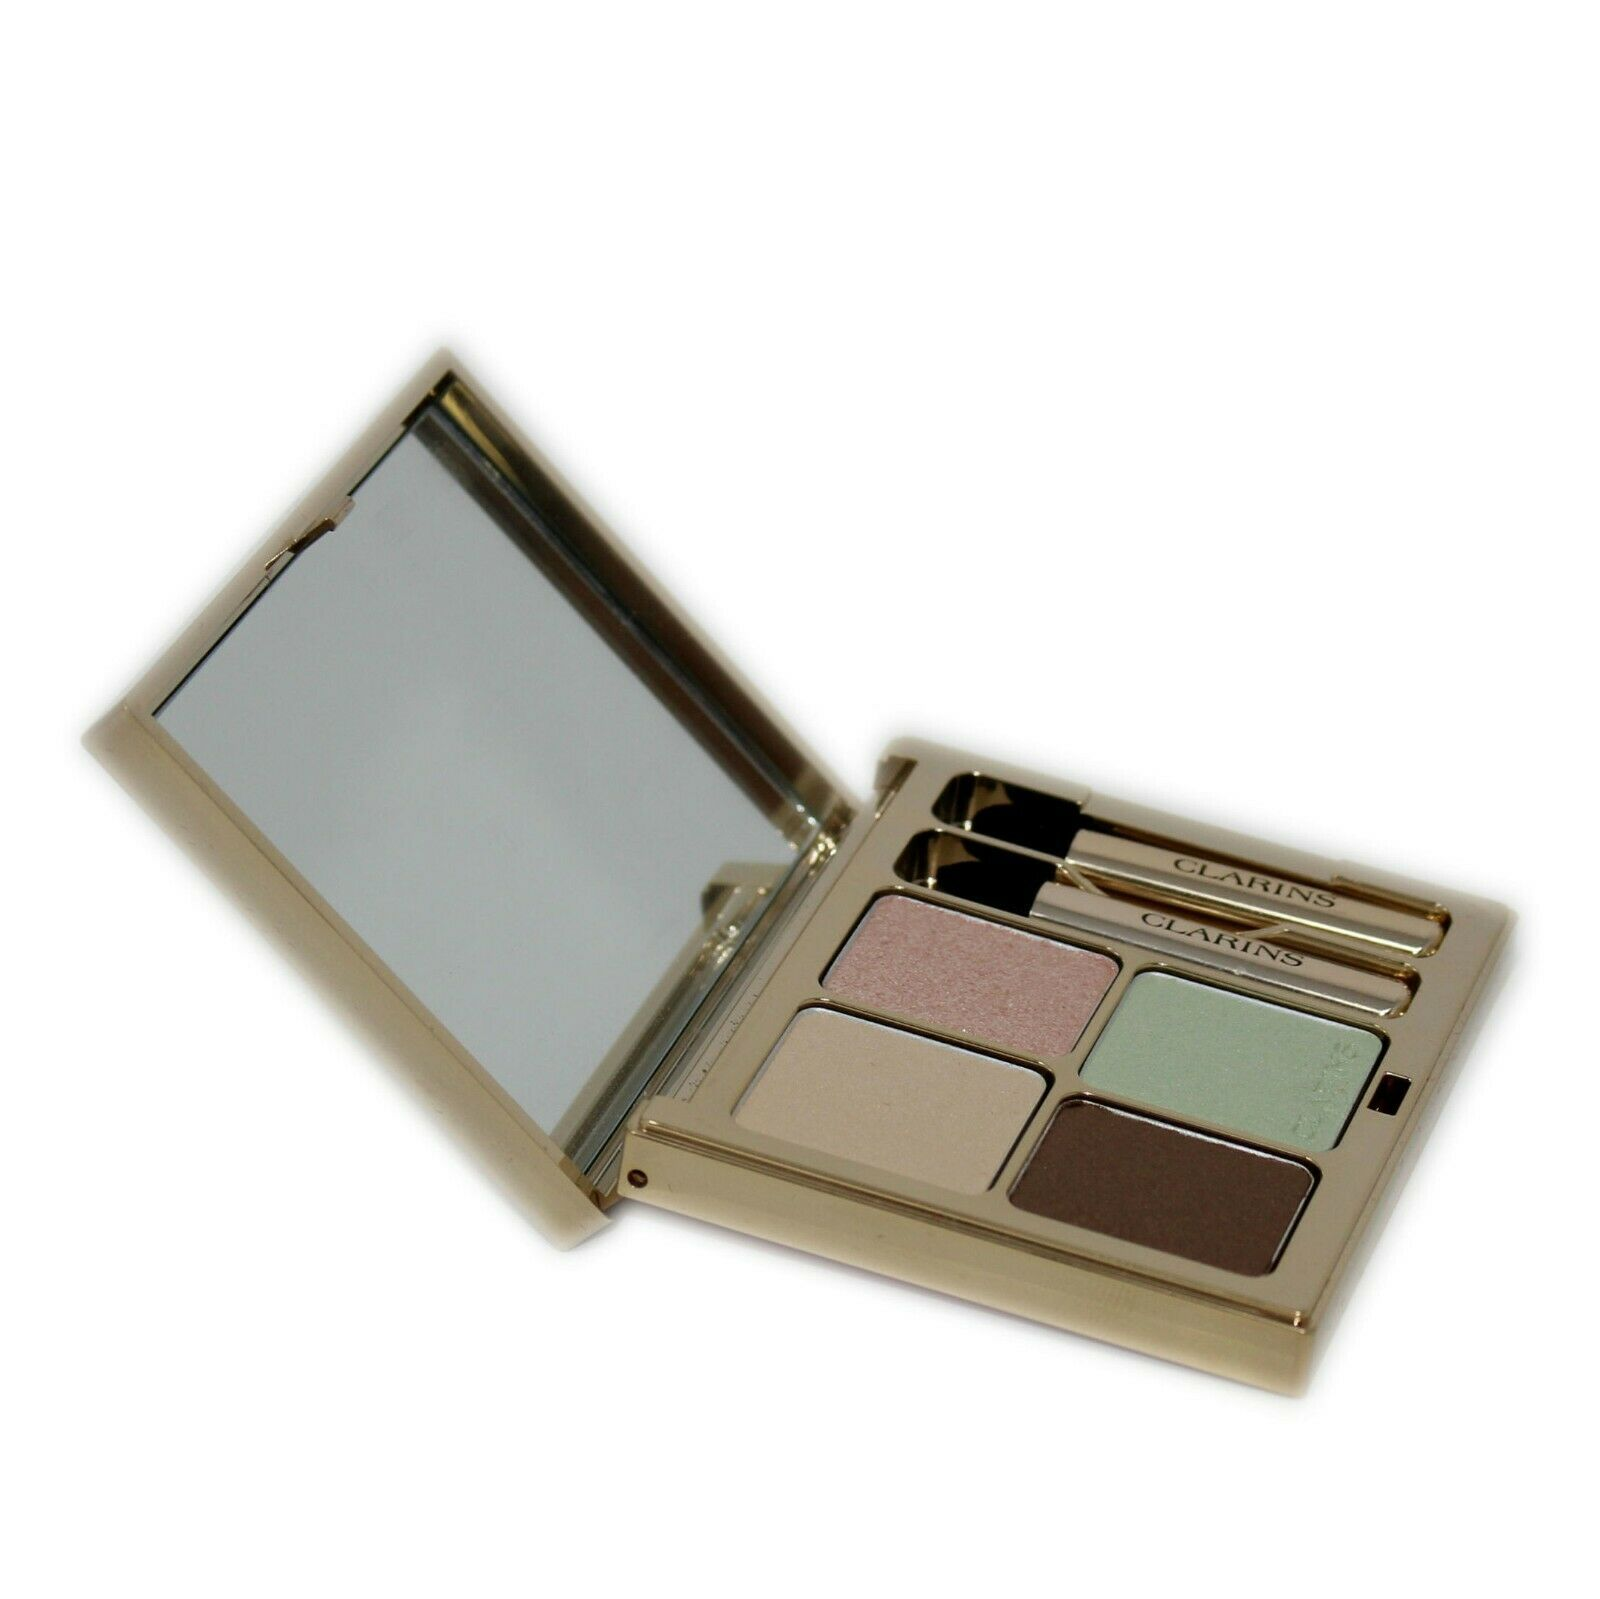 Primary image for CLARINS OMBRE MINERALE 4 COULEURS EYE QUARTET MINERAL PALETTE 5.8G #01-PASTELS